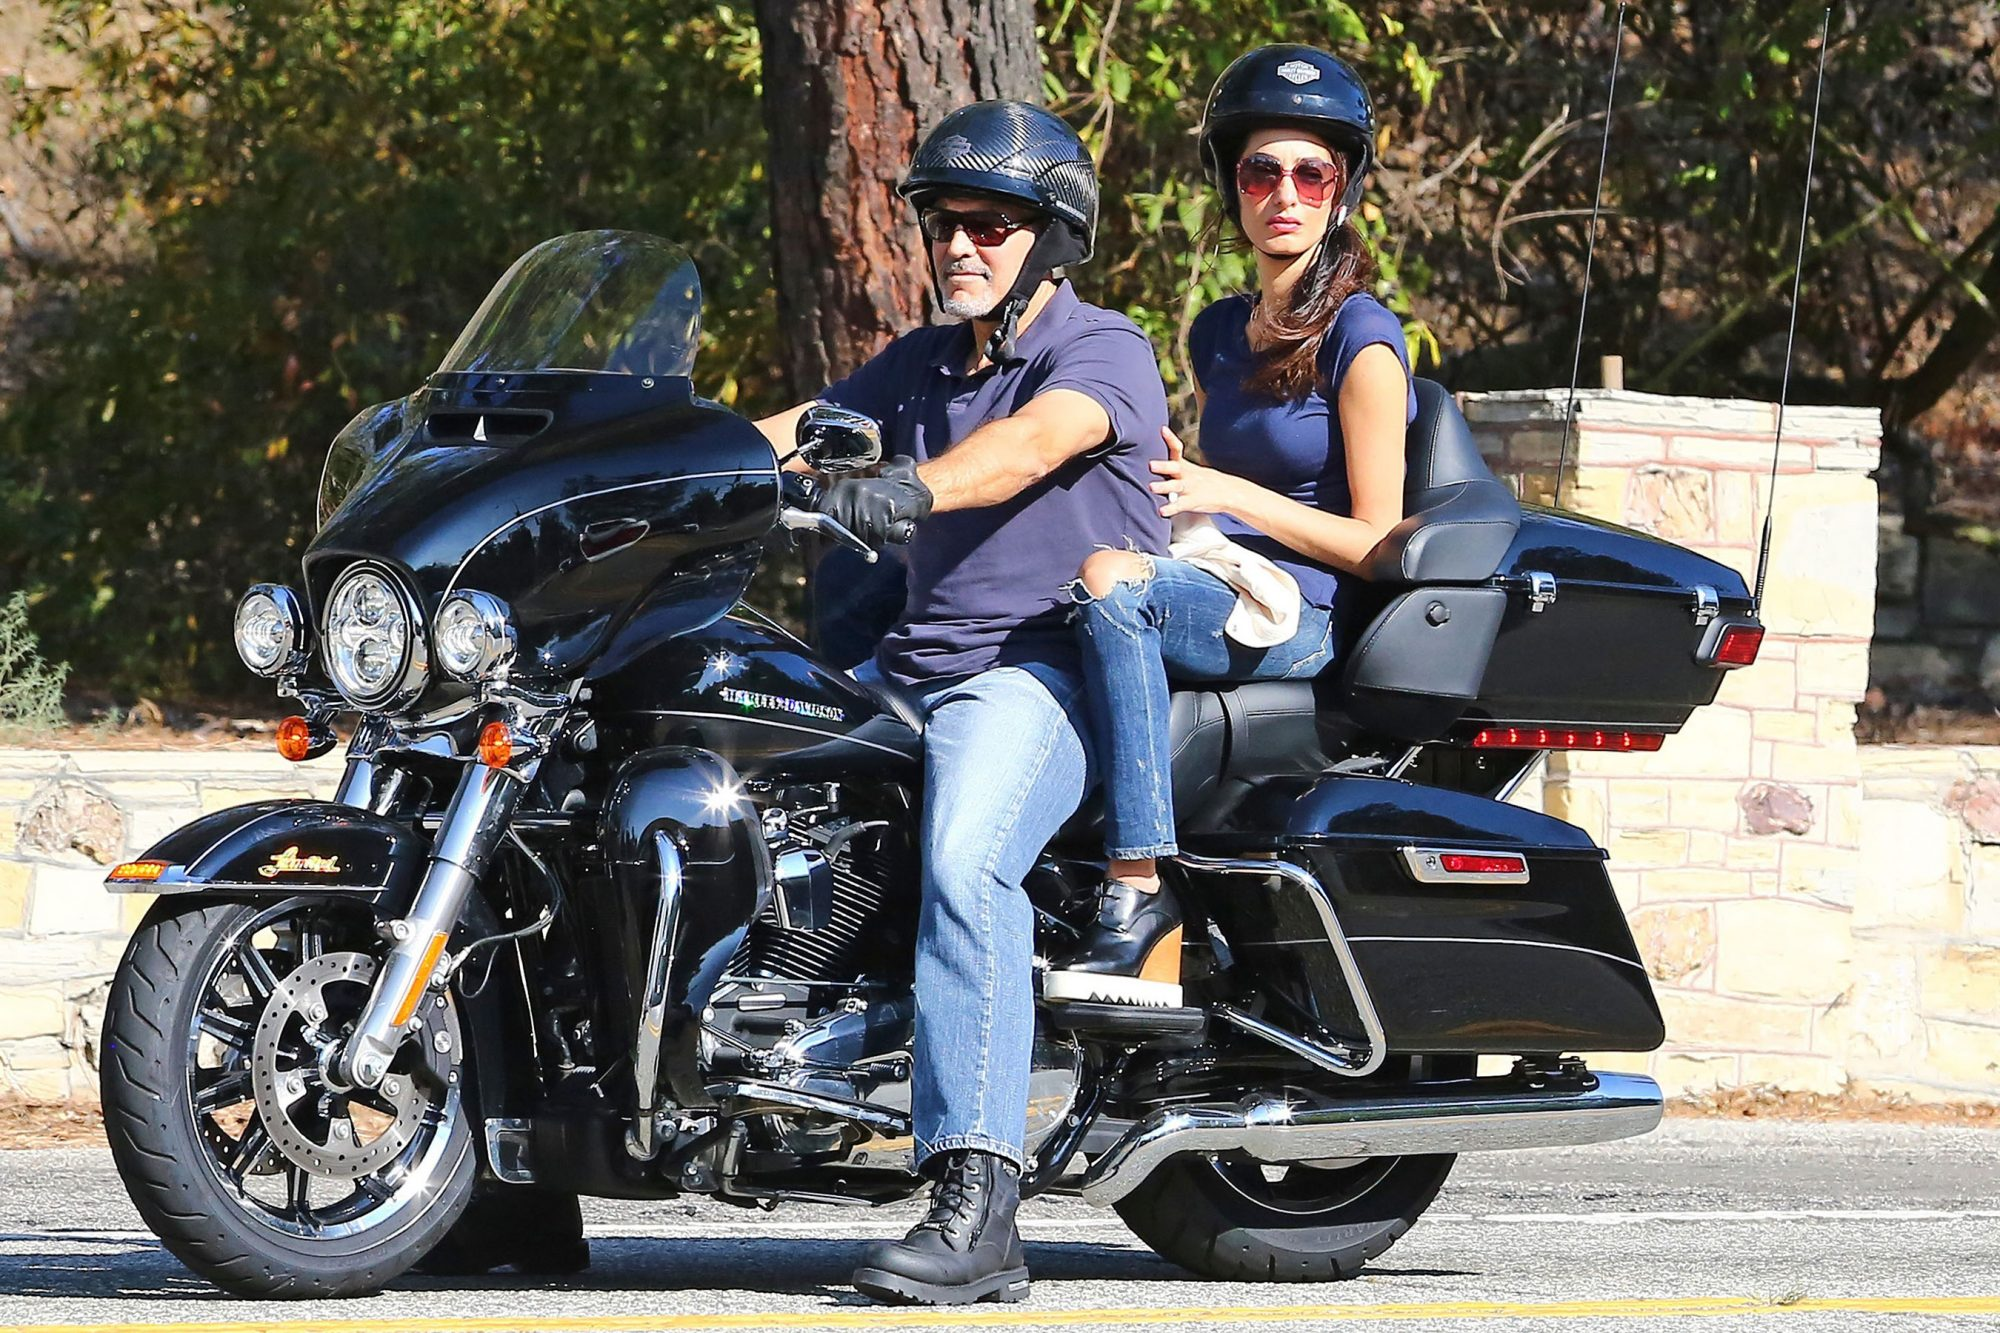 EXCLUSIVE: Exclusive: George Clooney And Amal Clooney Go For A Ride On His Harley Davidson In Los Angeles